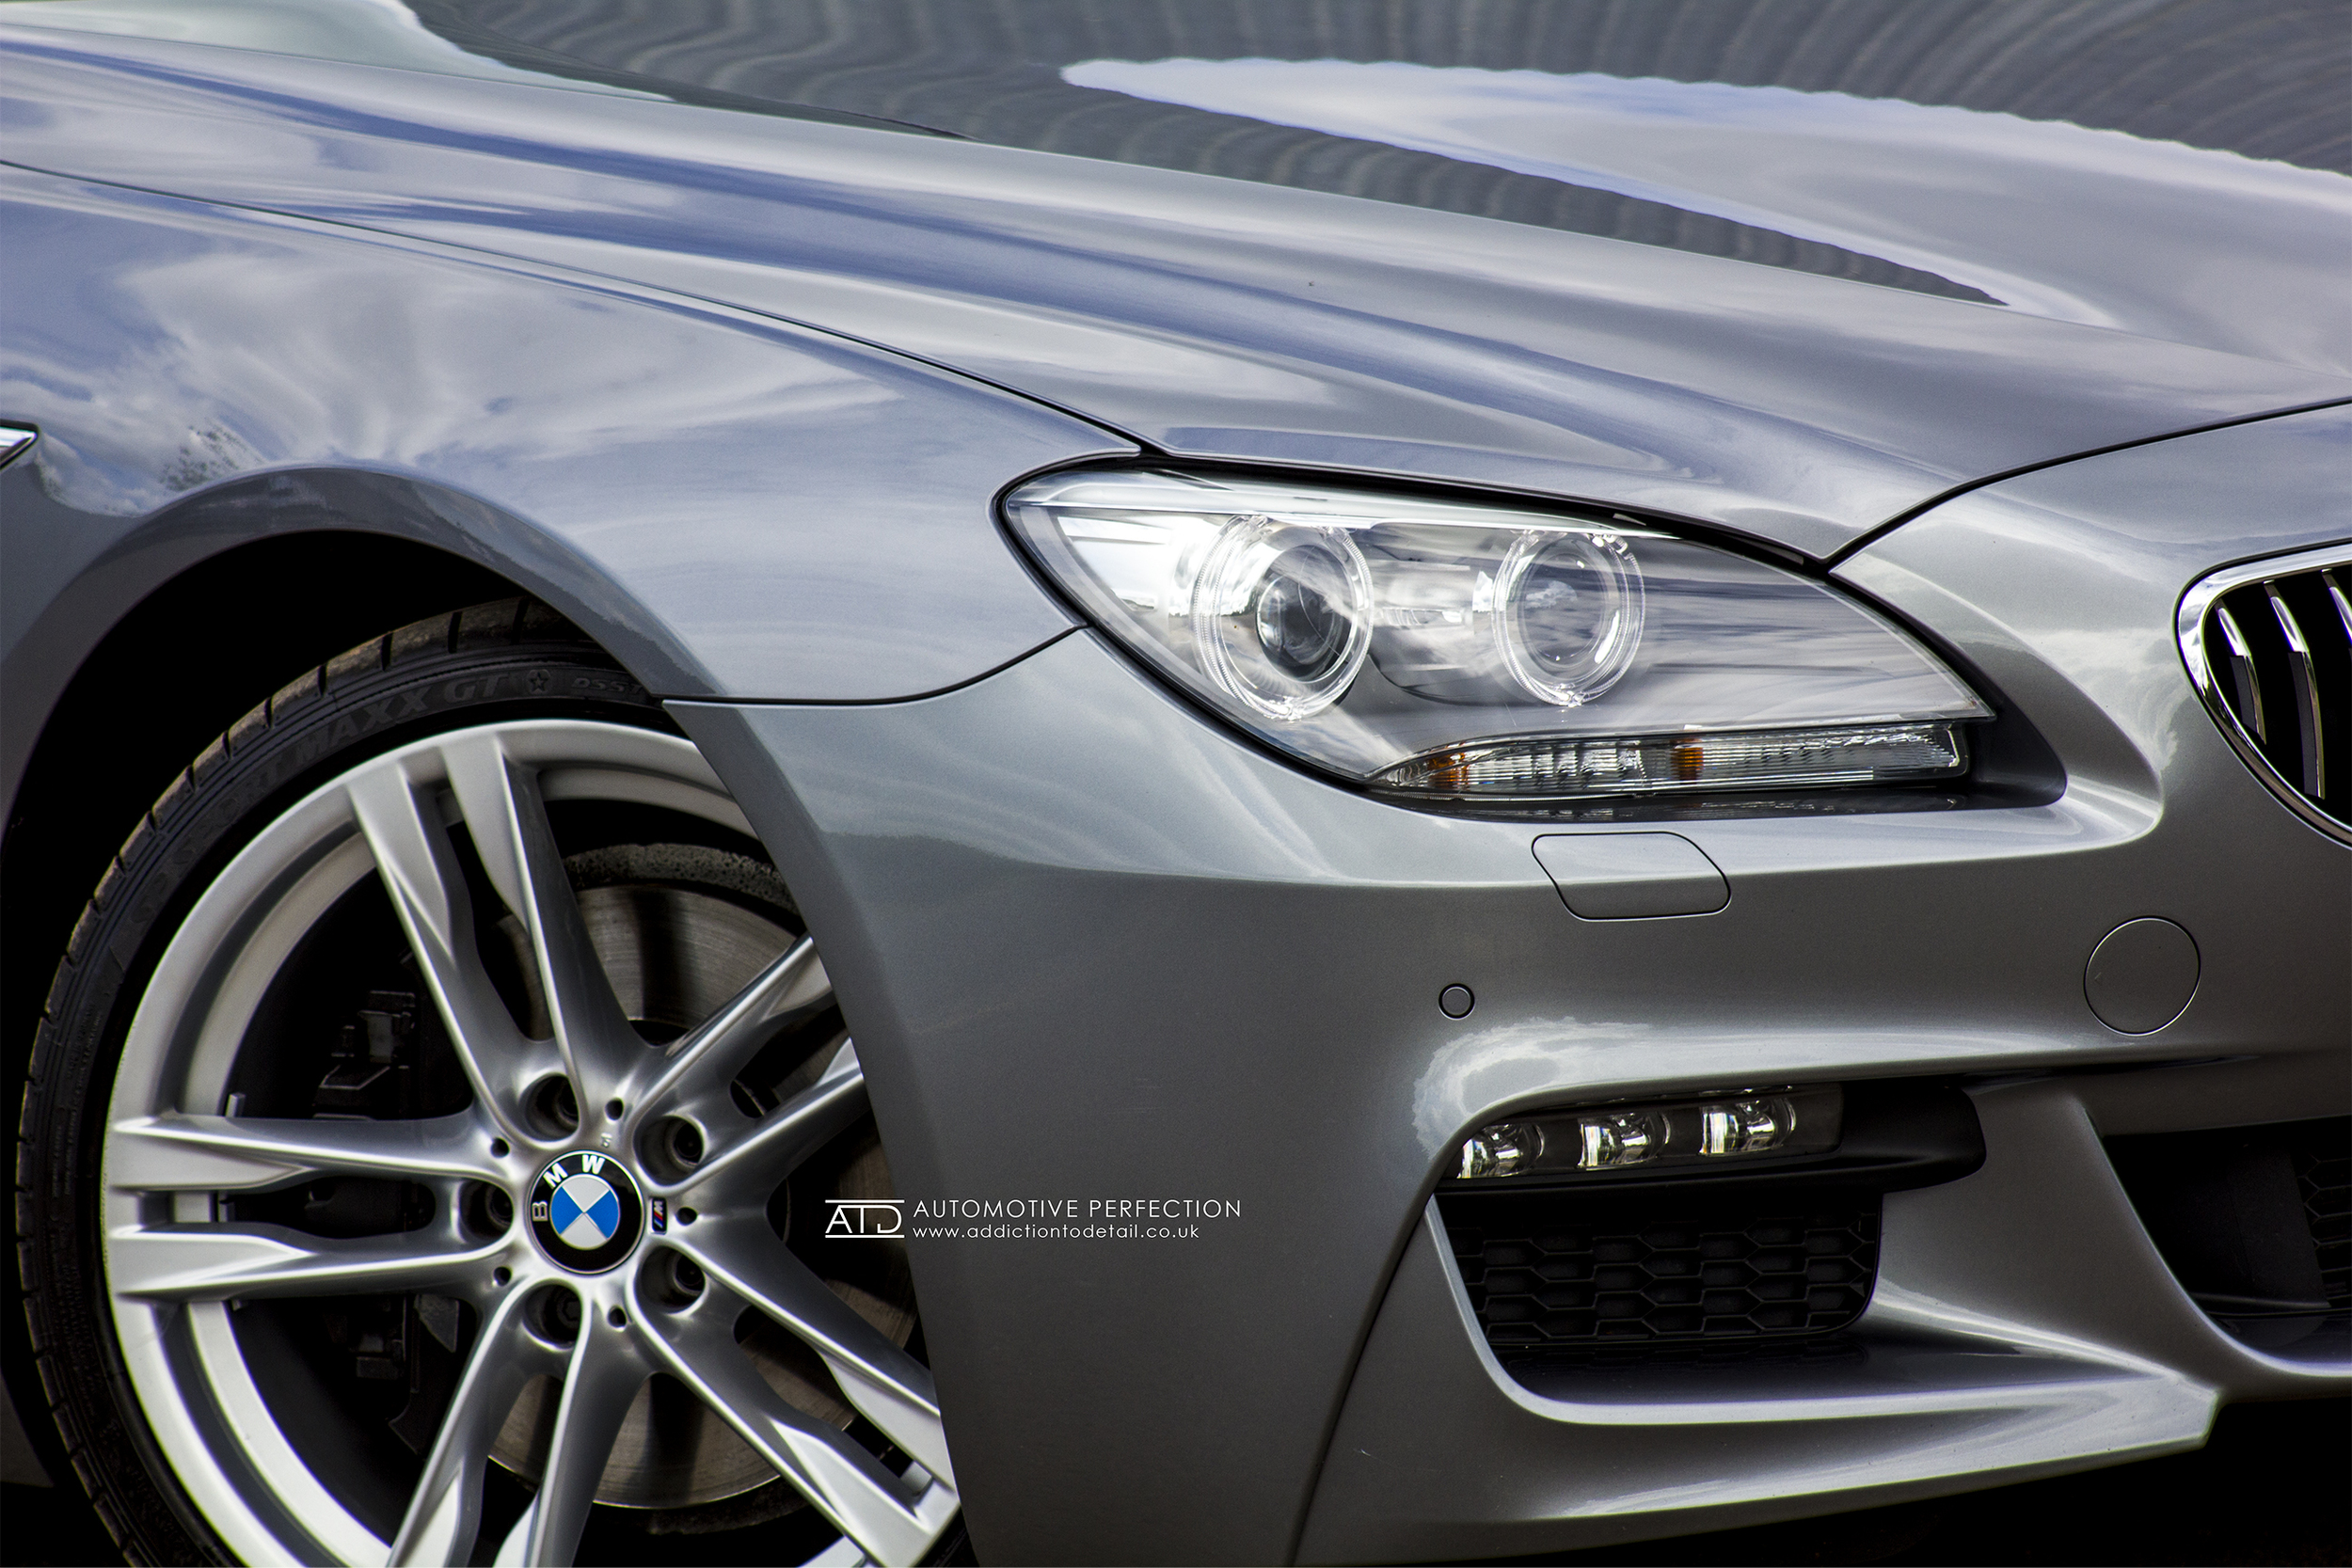 640D_Coupe_Photoshoot__0001_Image_033.jpg